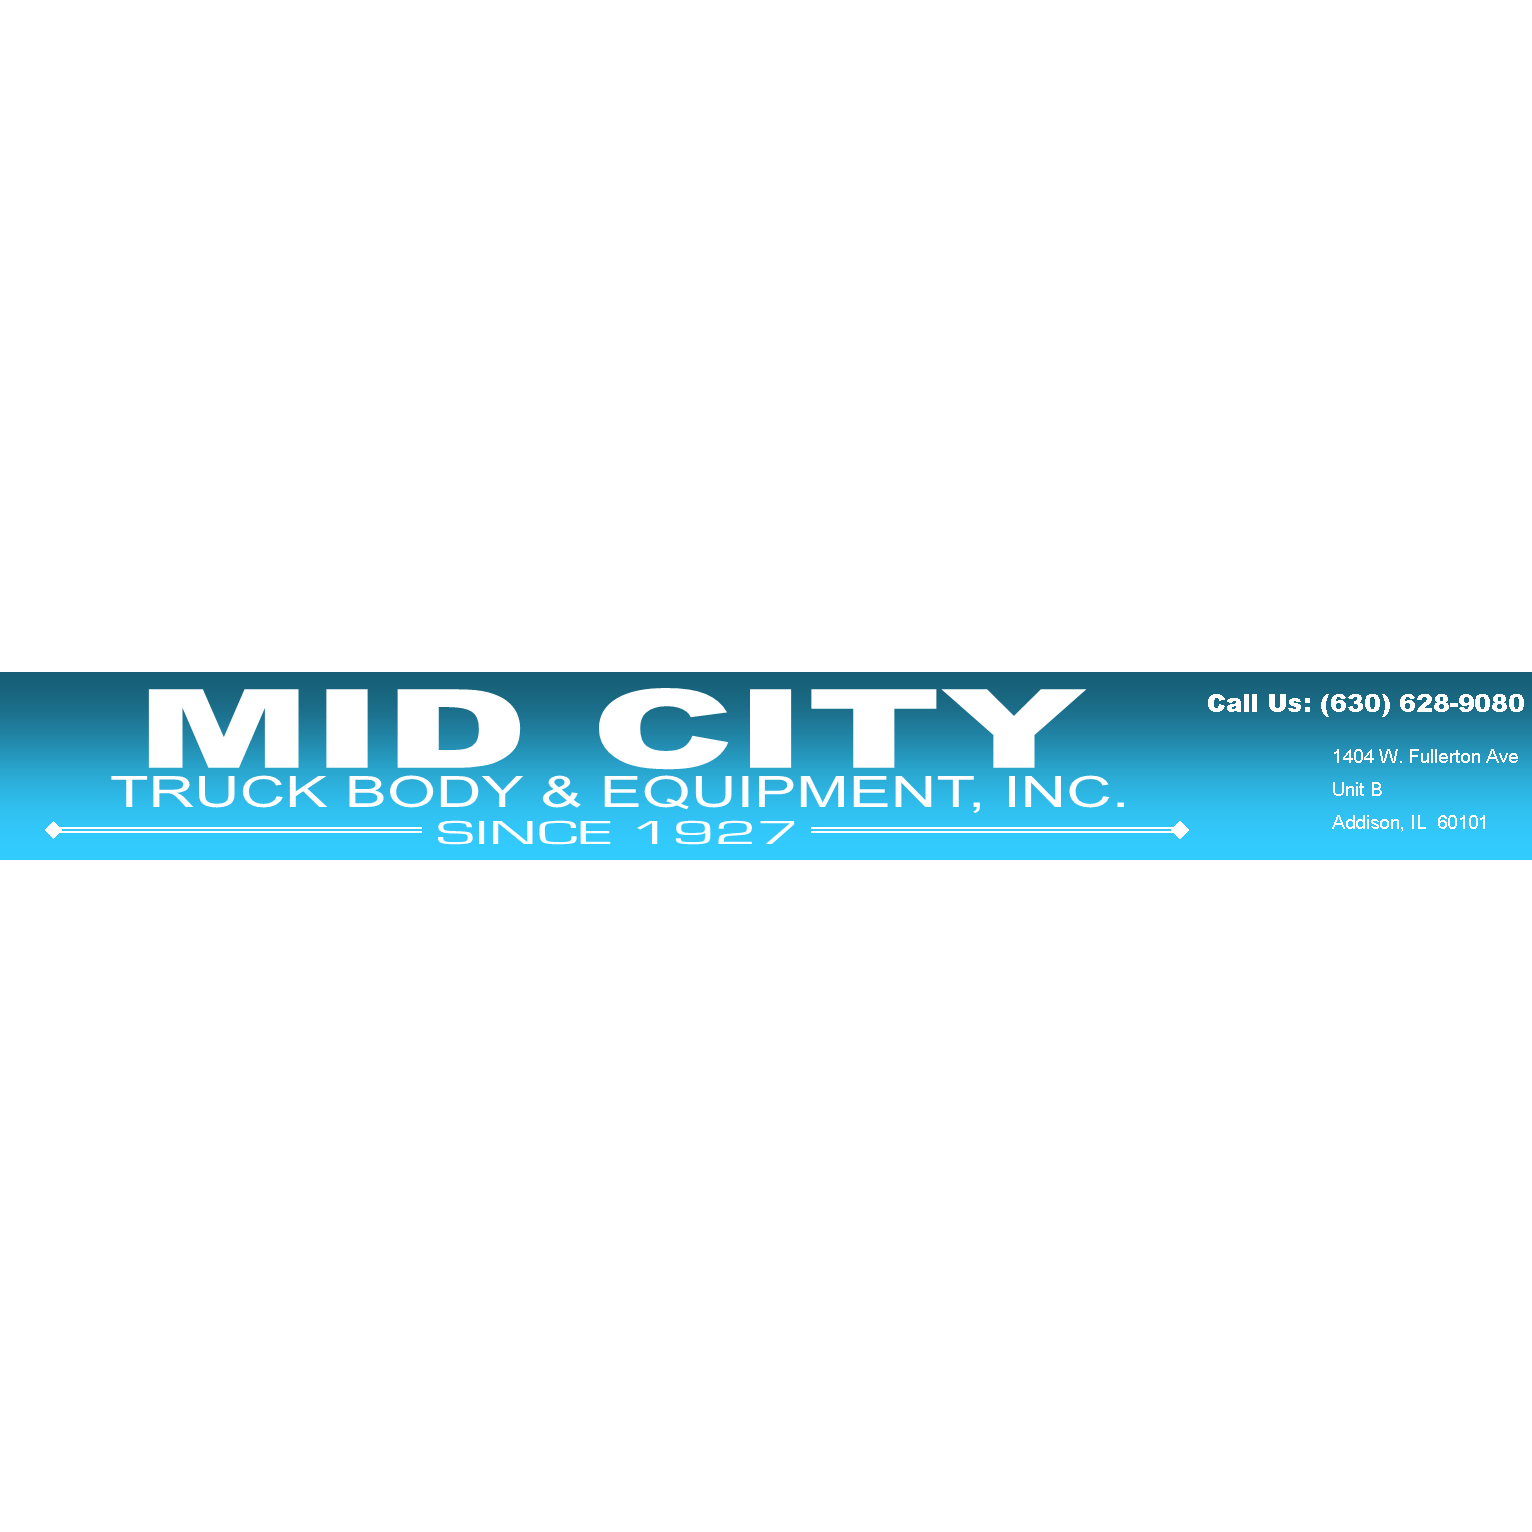 Mid City Truck Body & Equipment Inc